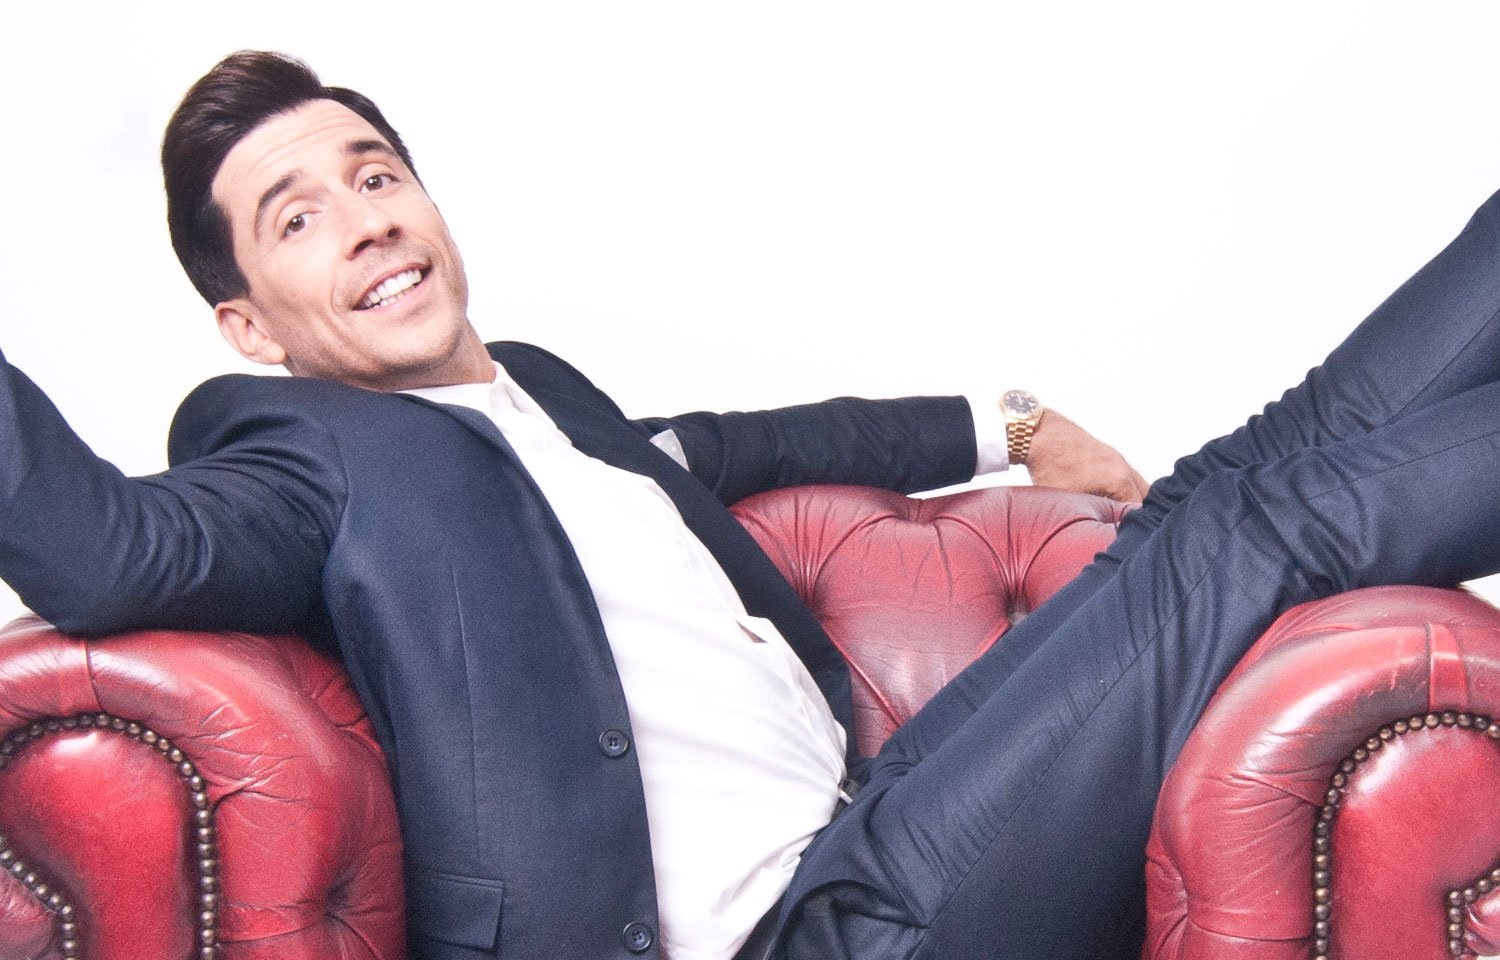 RUSSELL KANE'S EVIL GENIUS TOPS THE PODCAST CHARTS